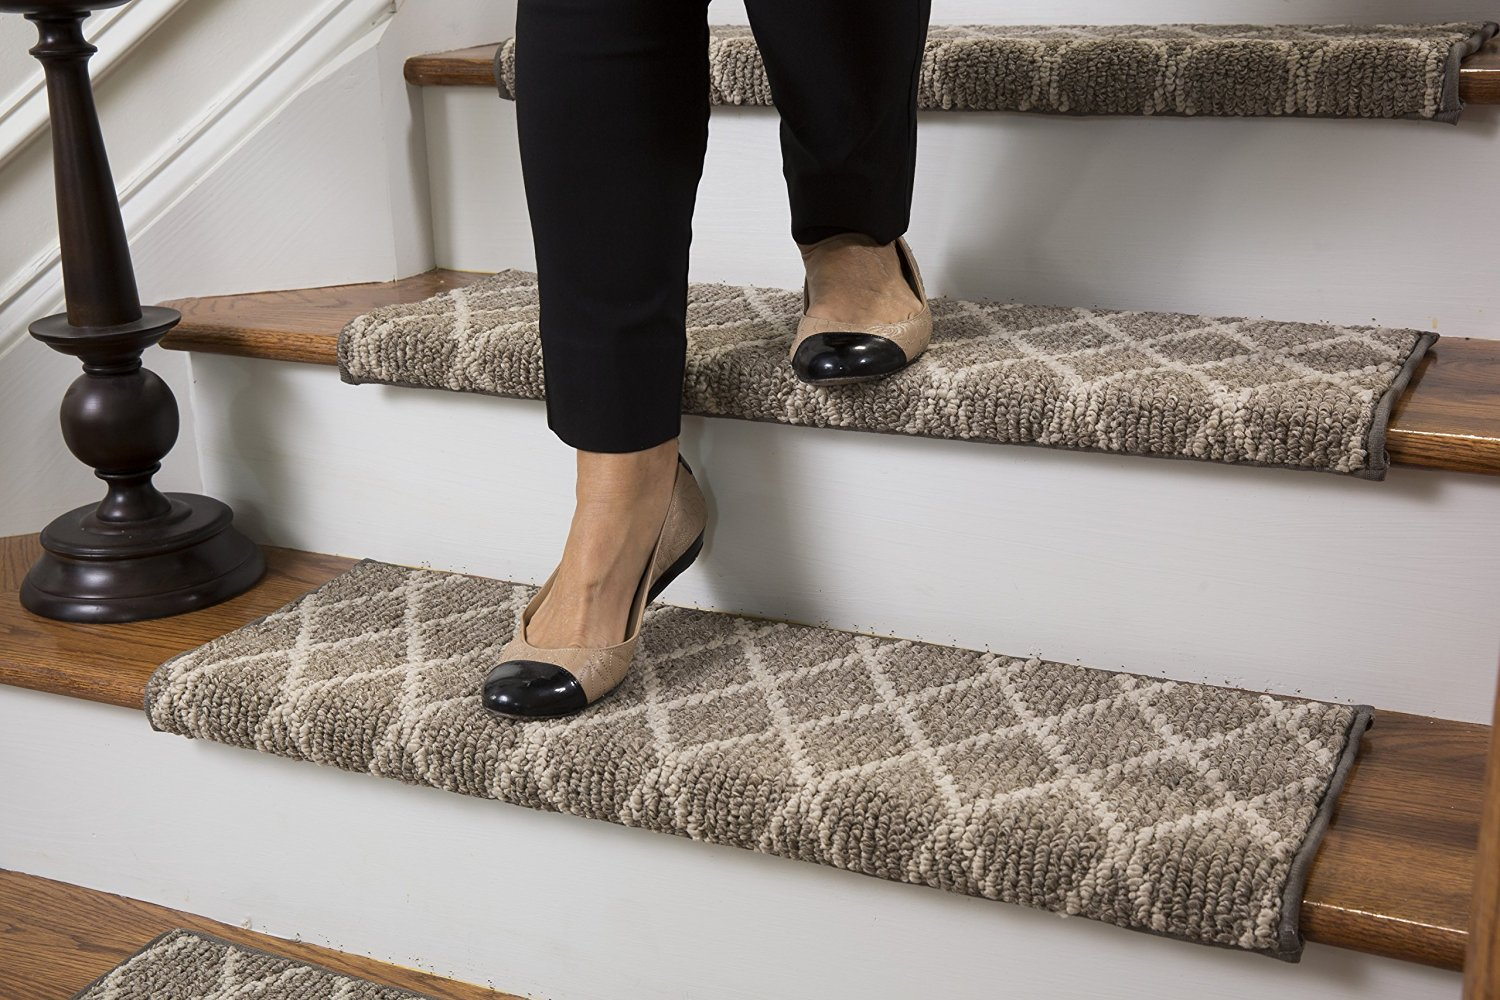 Get Quotations Jardin Wool Inspired Bullnose Carpet Stair Tread With Adhesive Padding Color Fontainebleau By